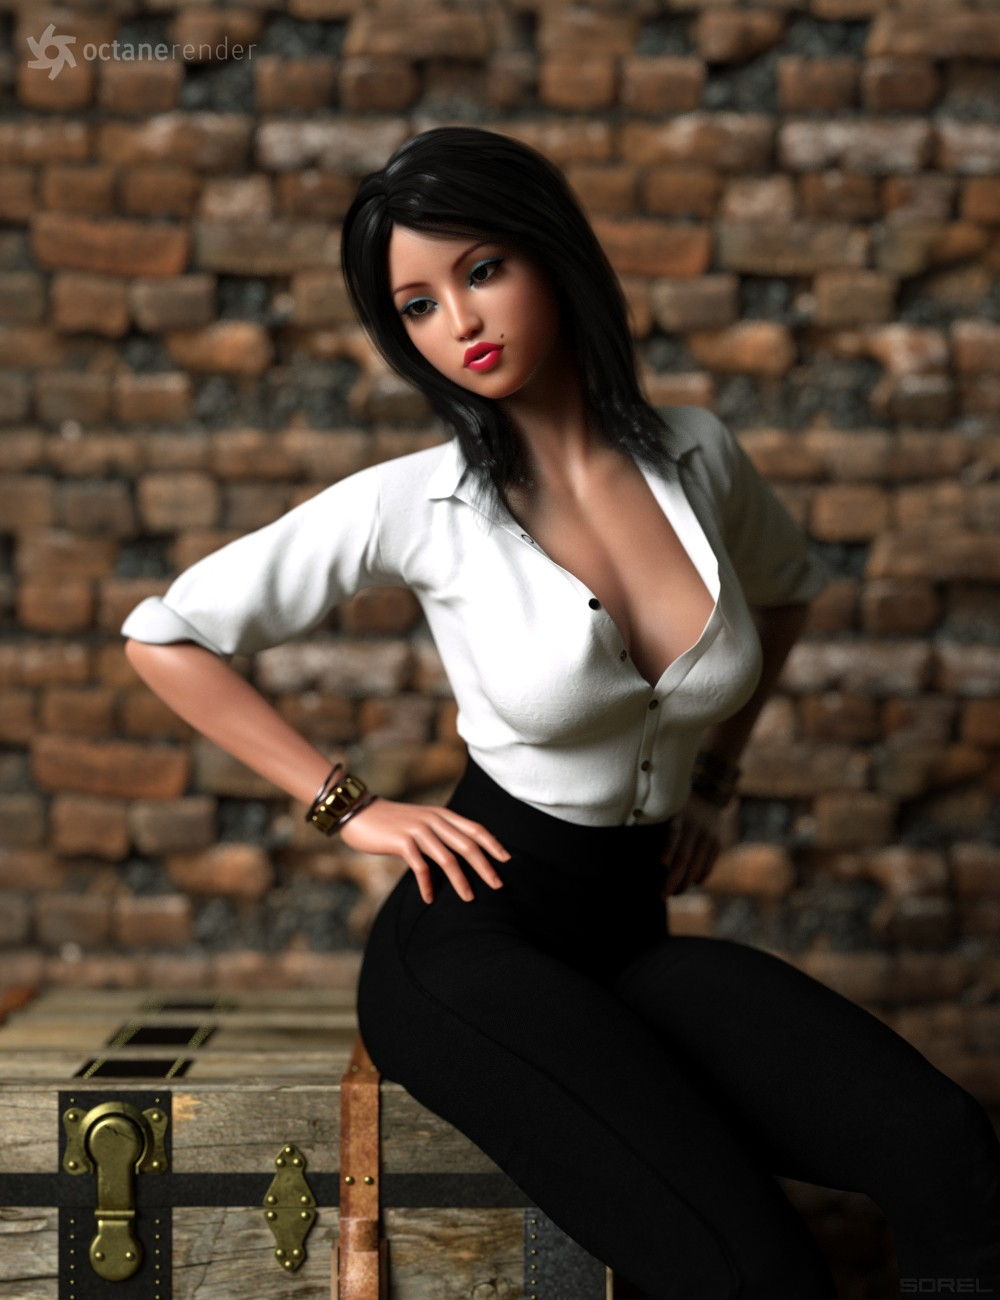 Daz3d female genesis